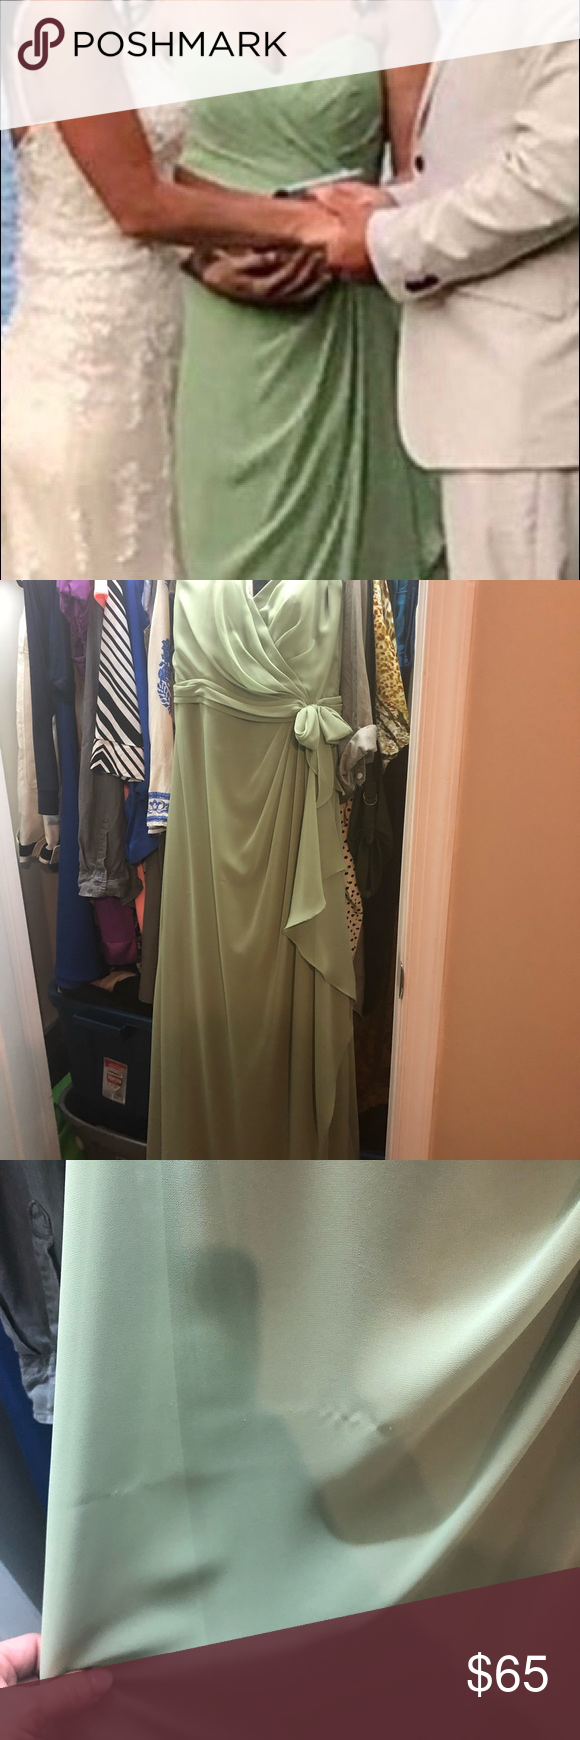 Sage green dress Beautiful, light weight safe green gown. Wore as bridesmaid ensemble. Slight snag in fabric as seen in pic but hides very well with the way the dress falls. Worn once, Dry cleaned. Alexia Designs Dresses Wedding #sagegreendress